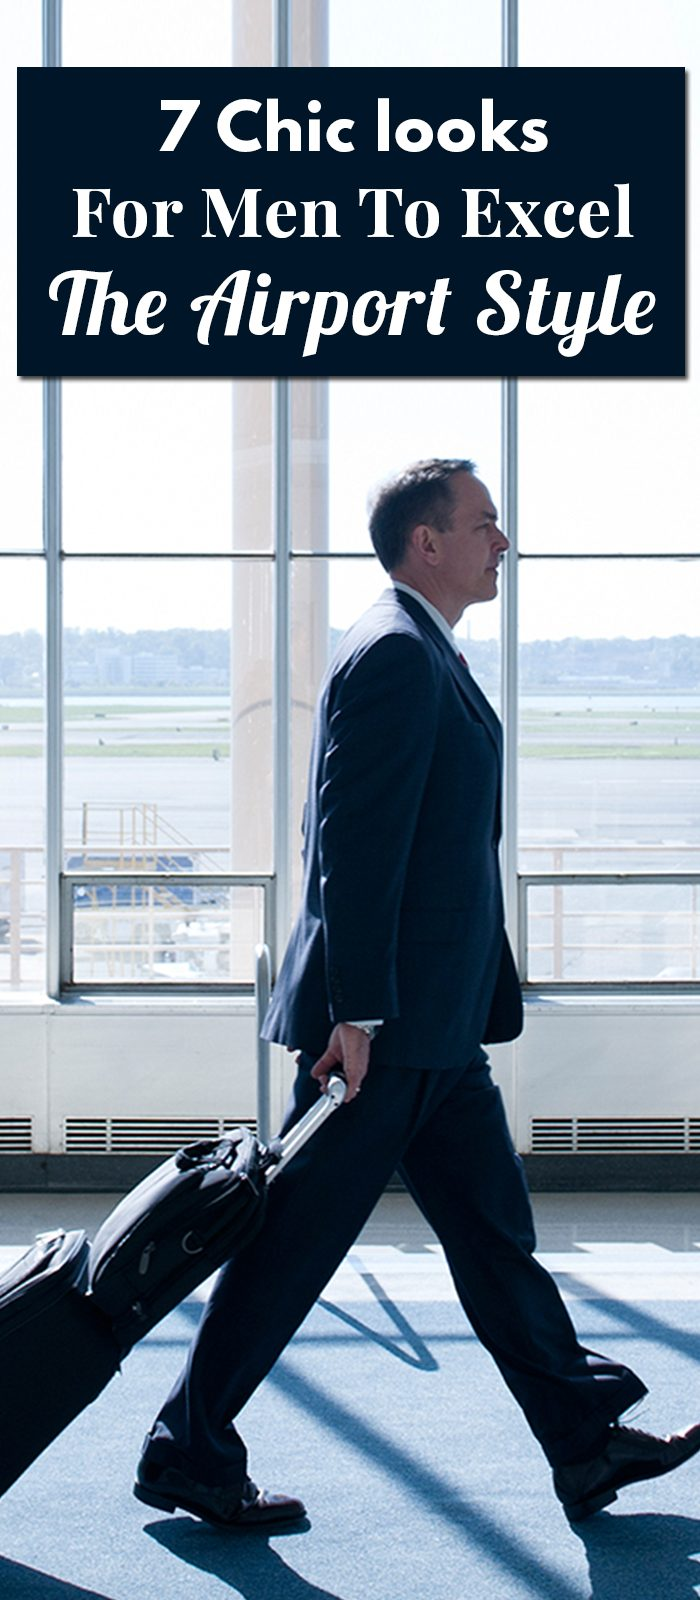 7-Chic-looks-For-Men-To-Excel-The-Airport-Style.